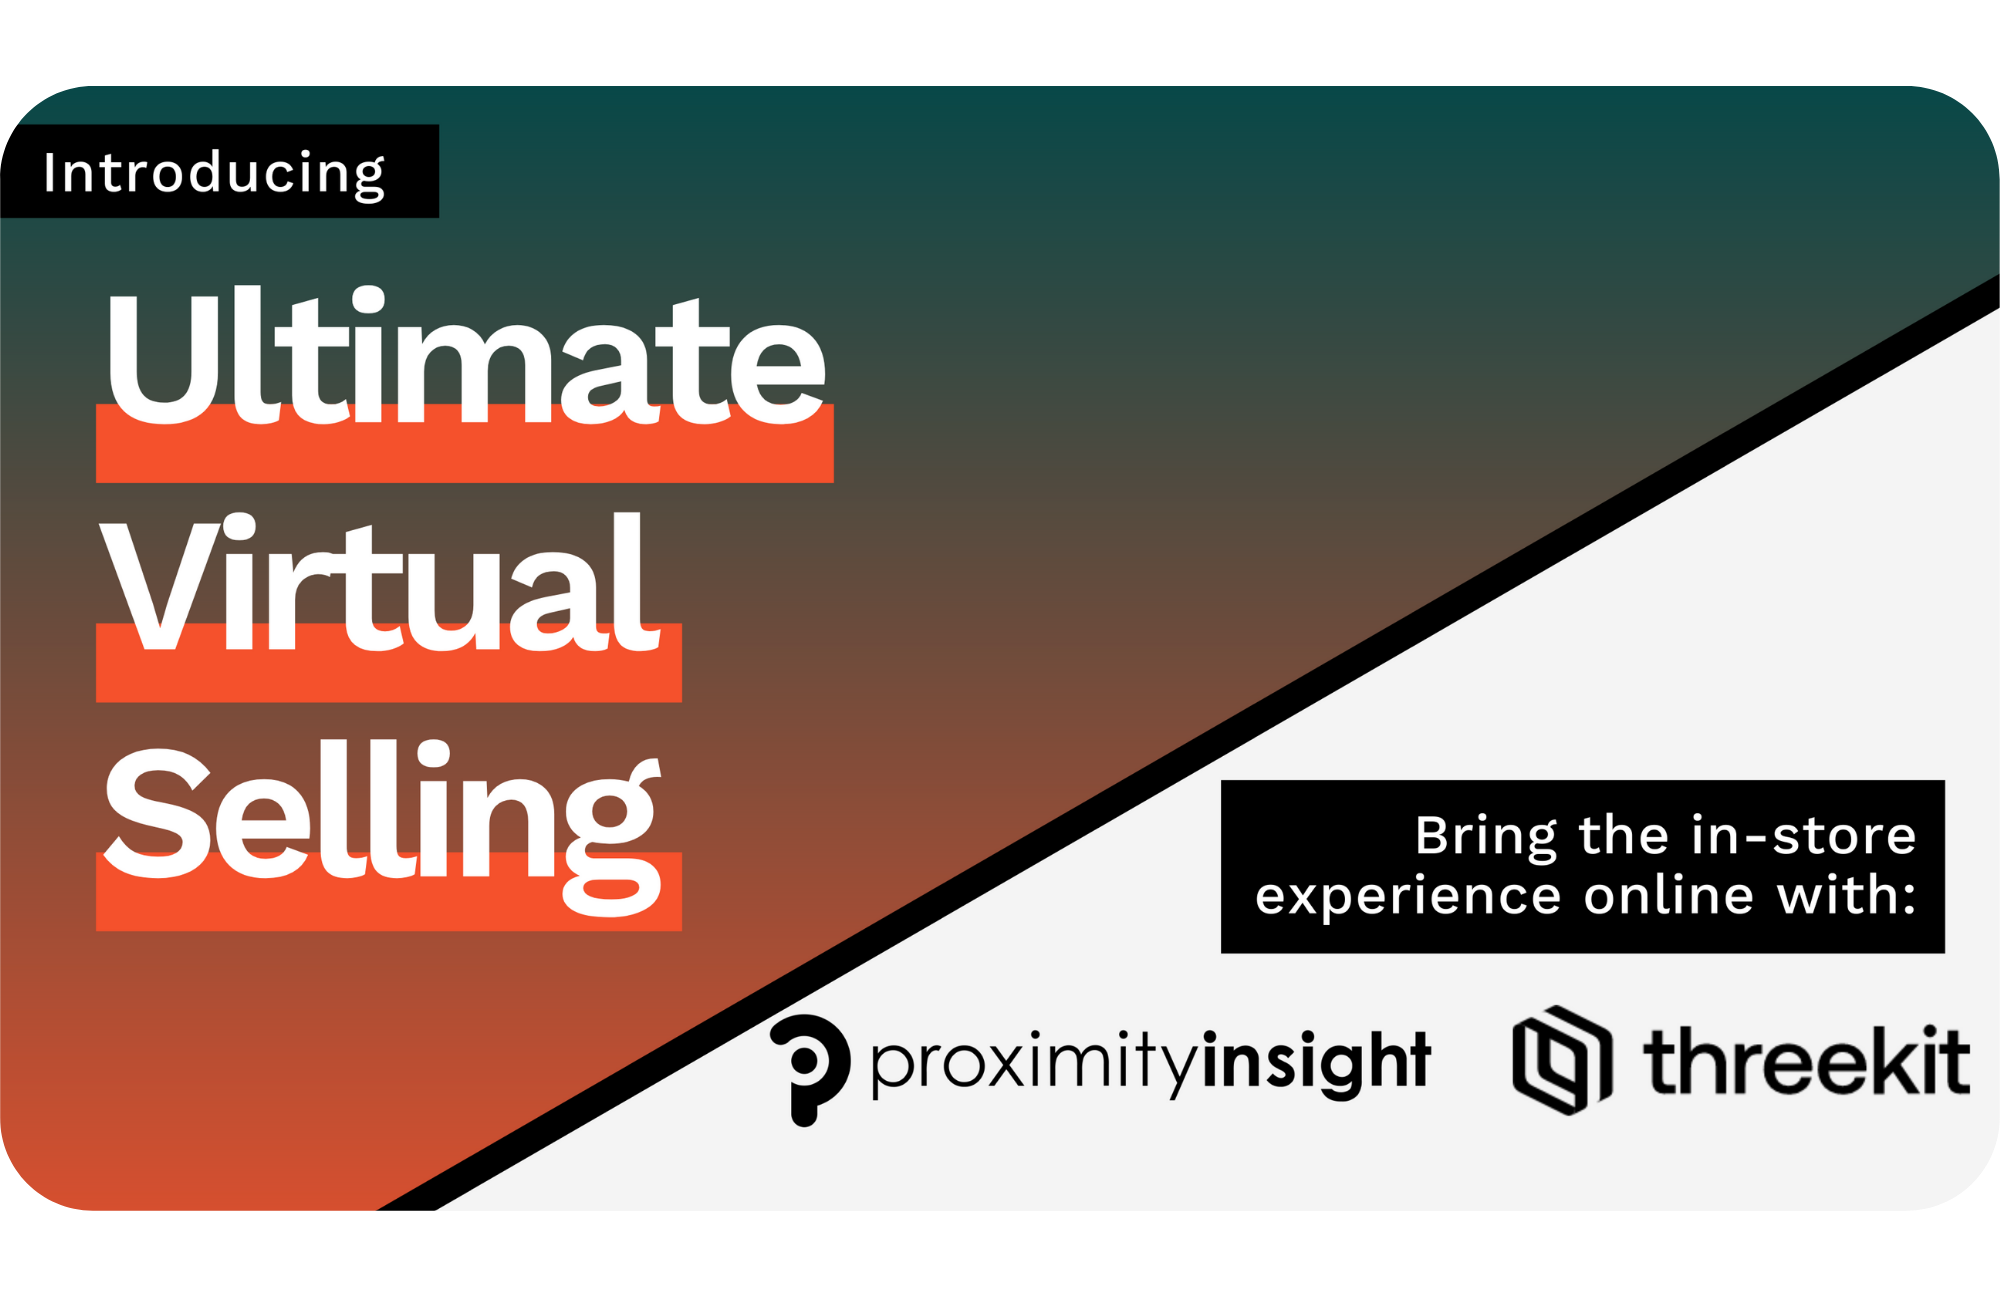 Ultimate Virtual Selling With Proximity Insight and Threekit